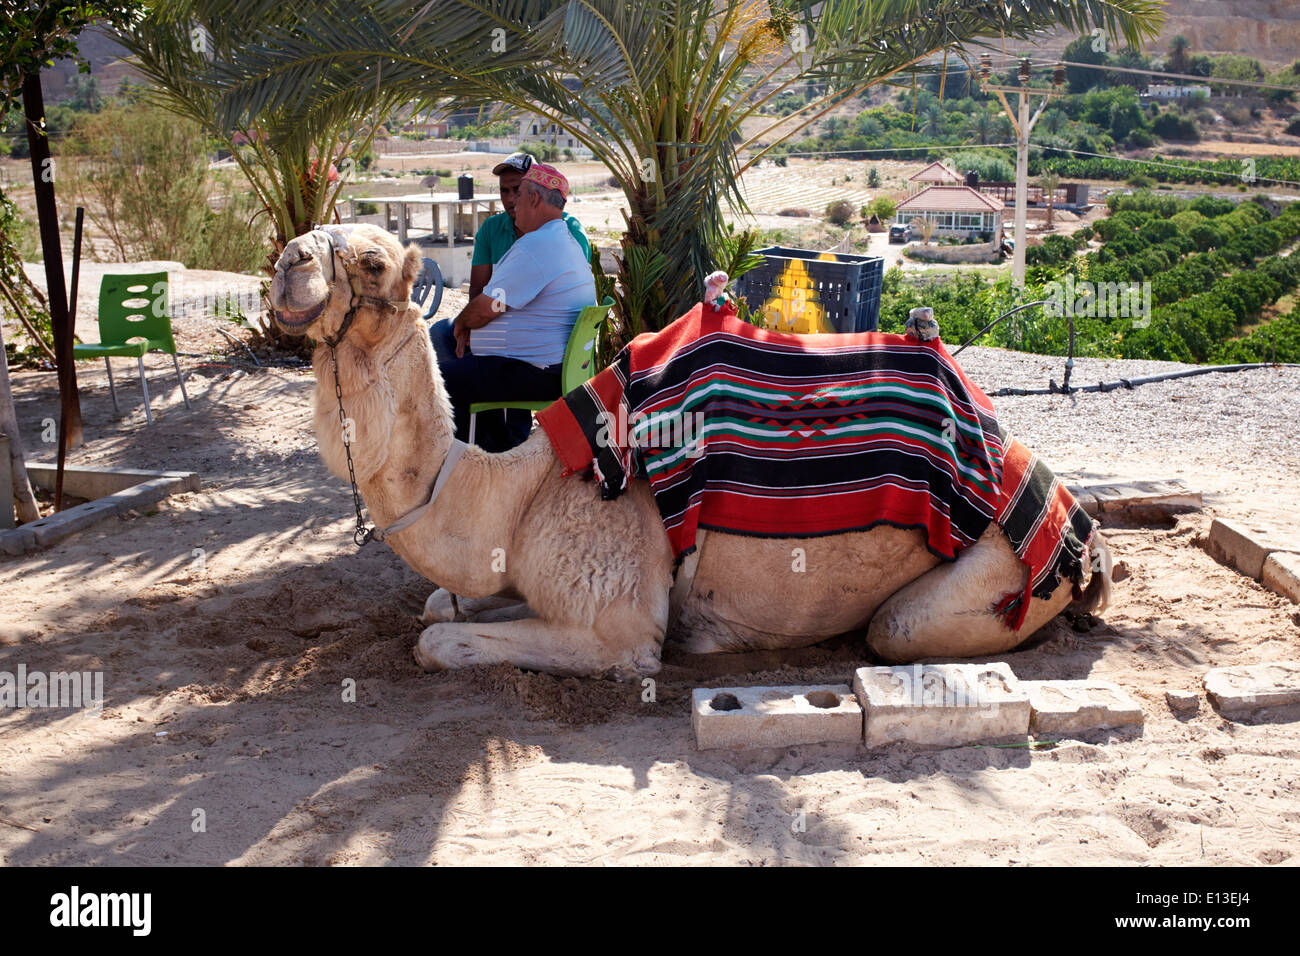 Camel waiting to give rides to tourists, Jericho, Israel, West Bank - Stock Image